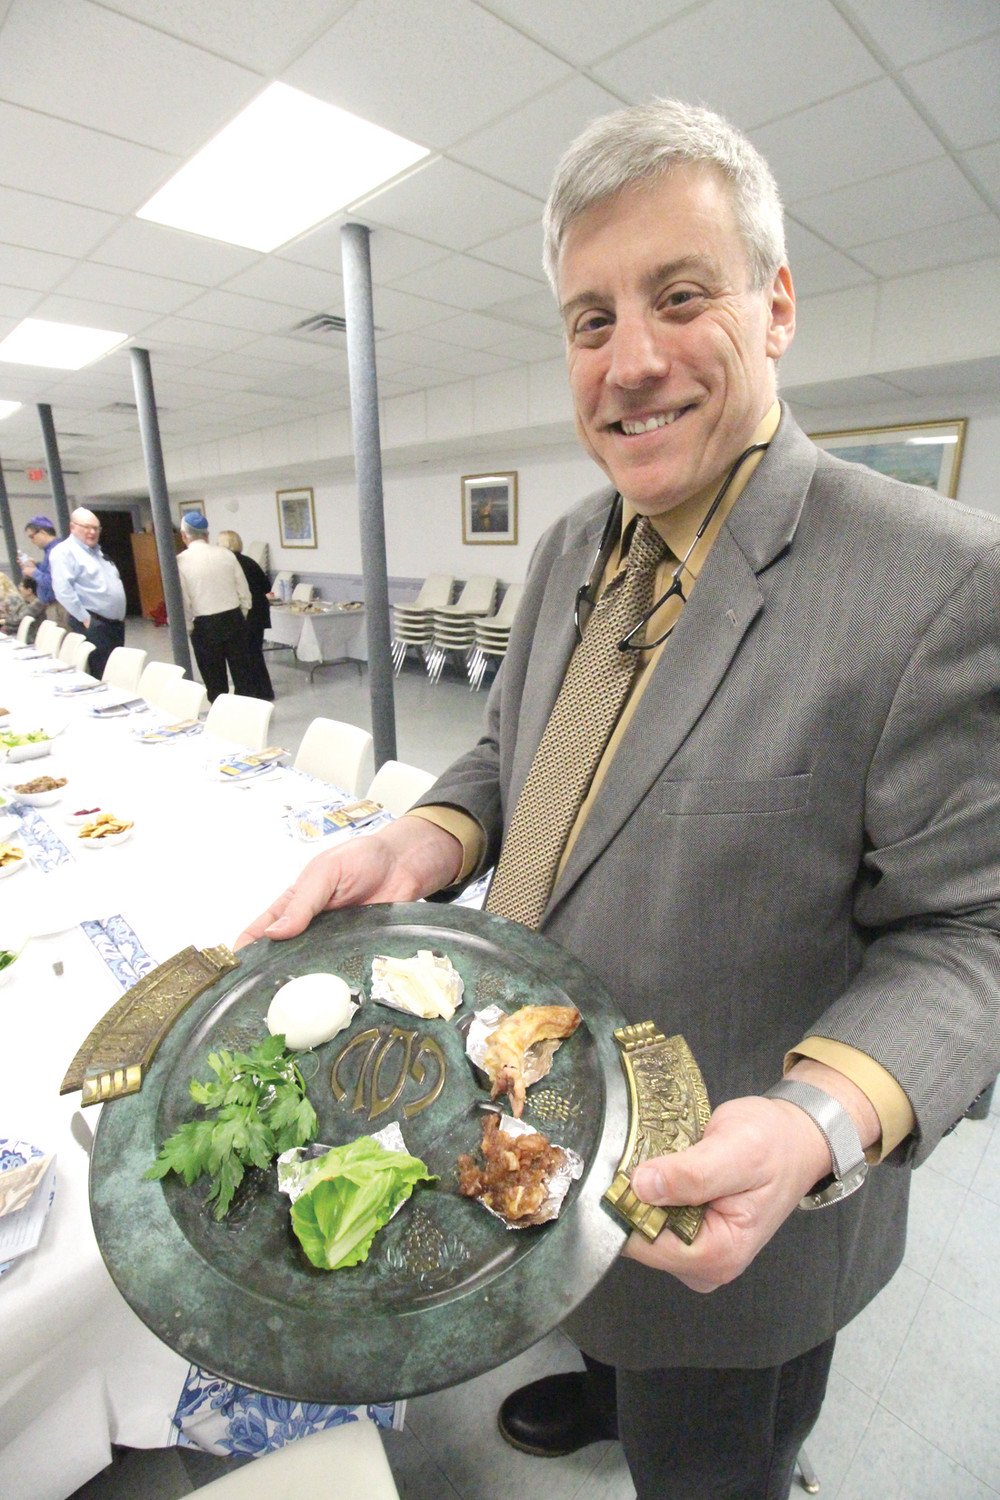 THE SEDER PLATE: Michael Frank, president of the Jewish Congregation Or Chadash, holds the Seder plate that includes a hard-boiled egg, roasted shankbone, bitter herbs, charoses or mixture of finely chopped apples, nut and cinnamon, chazeres or romaine lettuce and karpas or parsley or celery. Each of the foods has symbolic meaning with the egg representing spring and a new beginning.